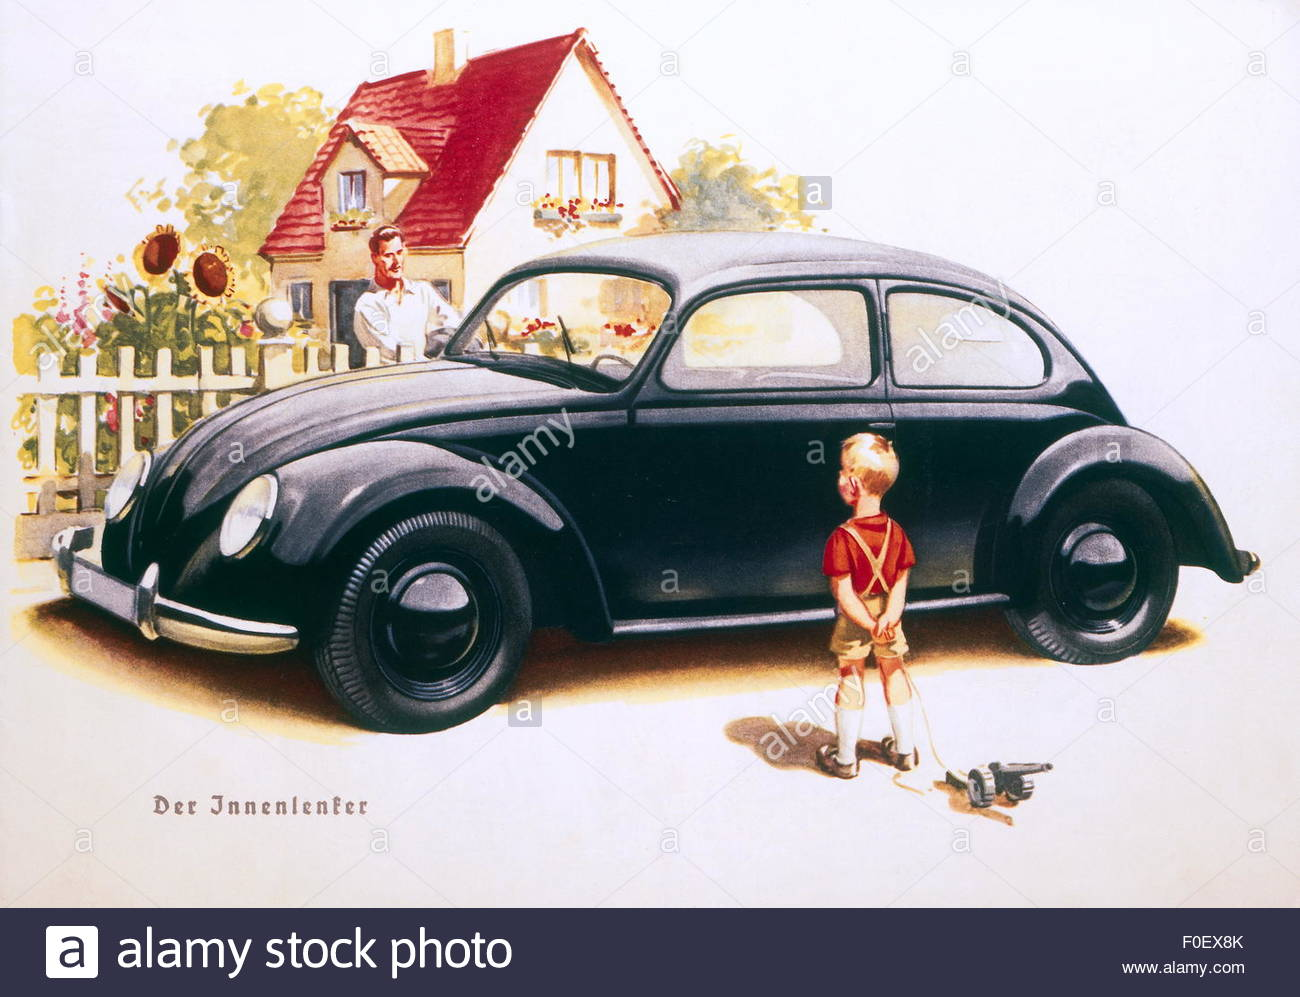 interior vw beetle stockfotos interior vw beetle bilder alamy. Black Bedroom Furniture Sets. Home Design Ideas